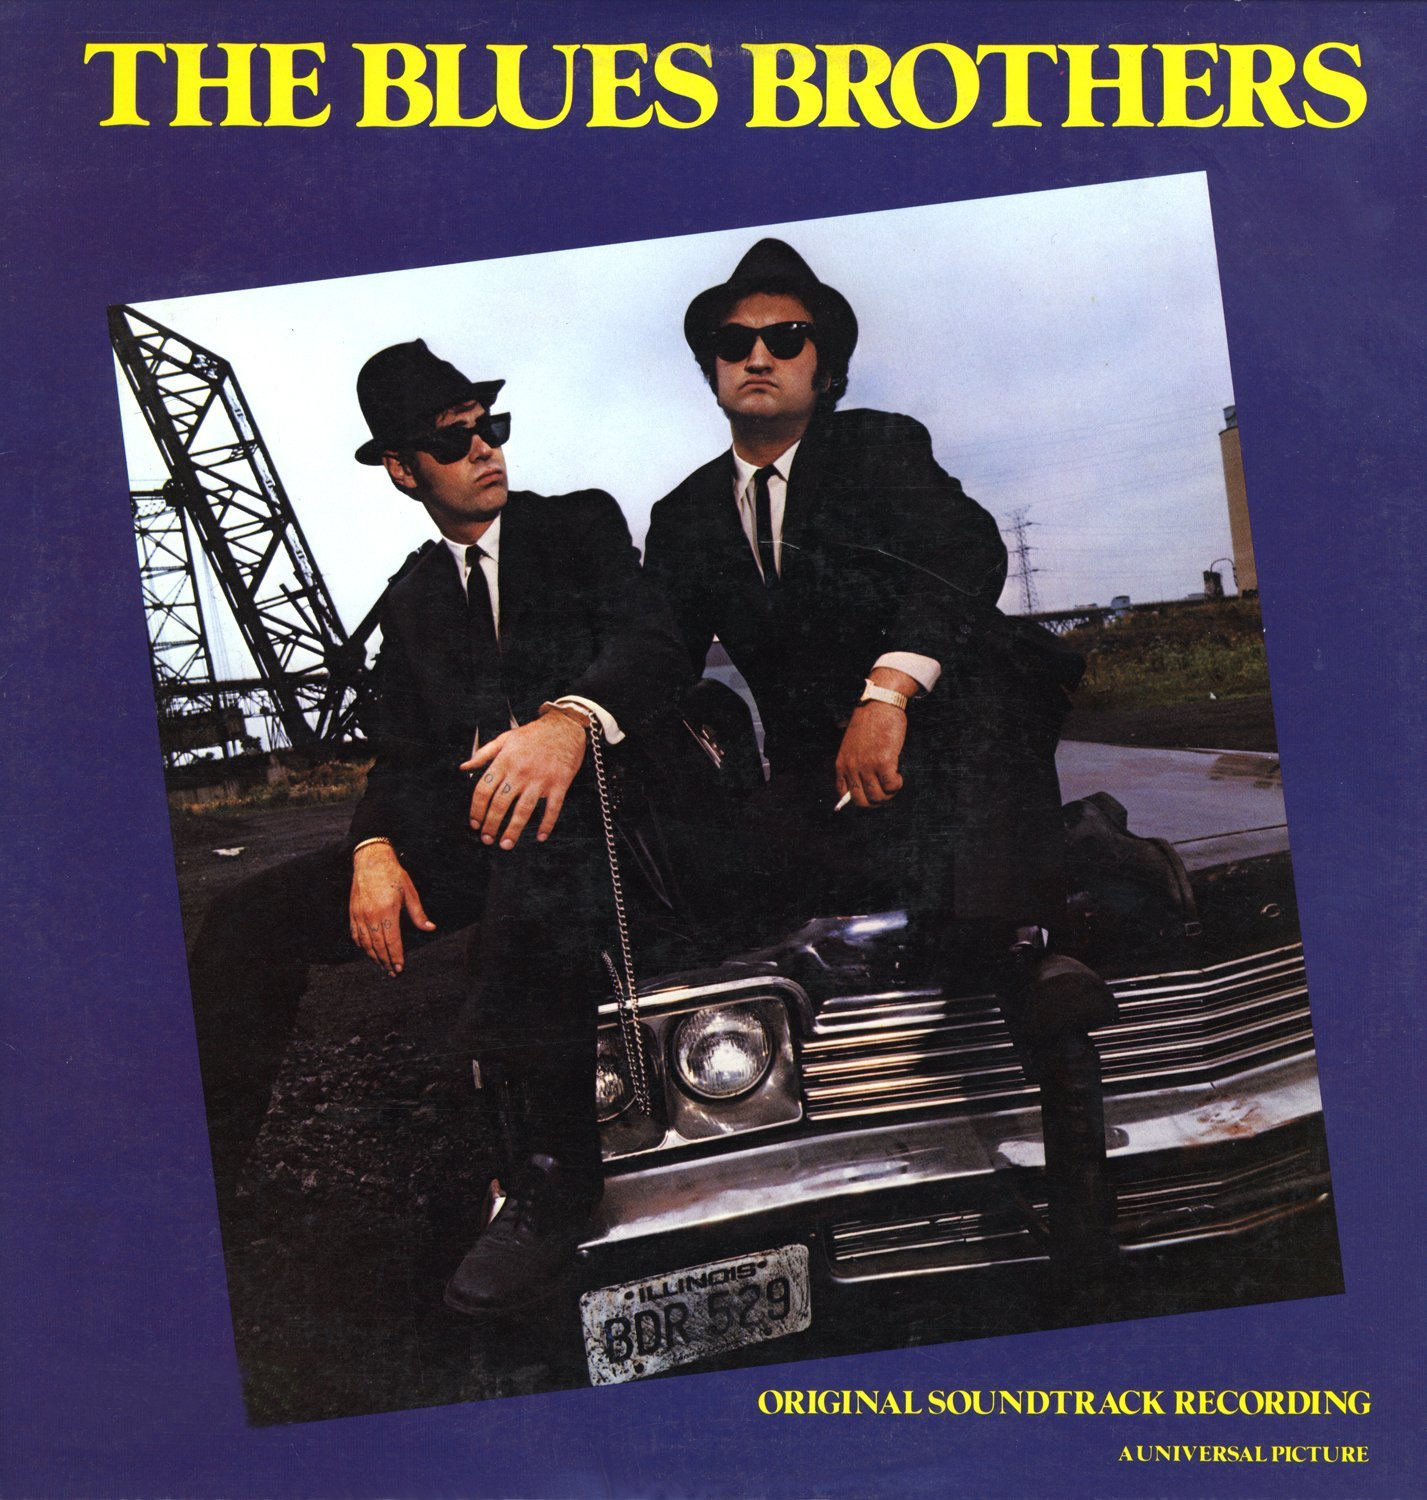 The Blues Brothers The Blue Brothers Original Soundtrack Recording Amazon Com Music